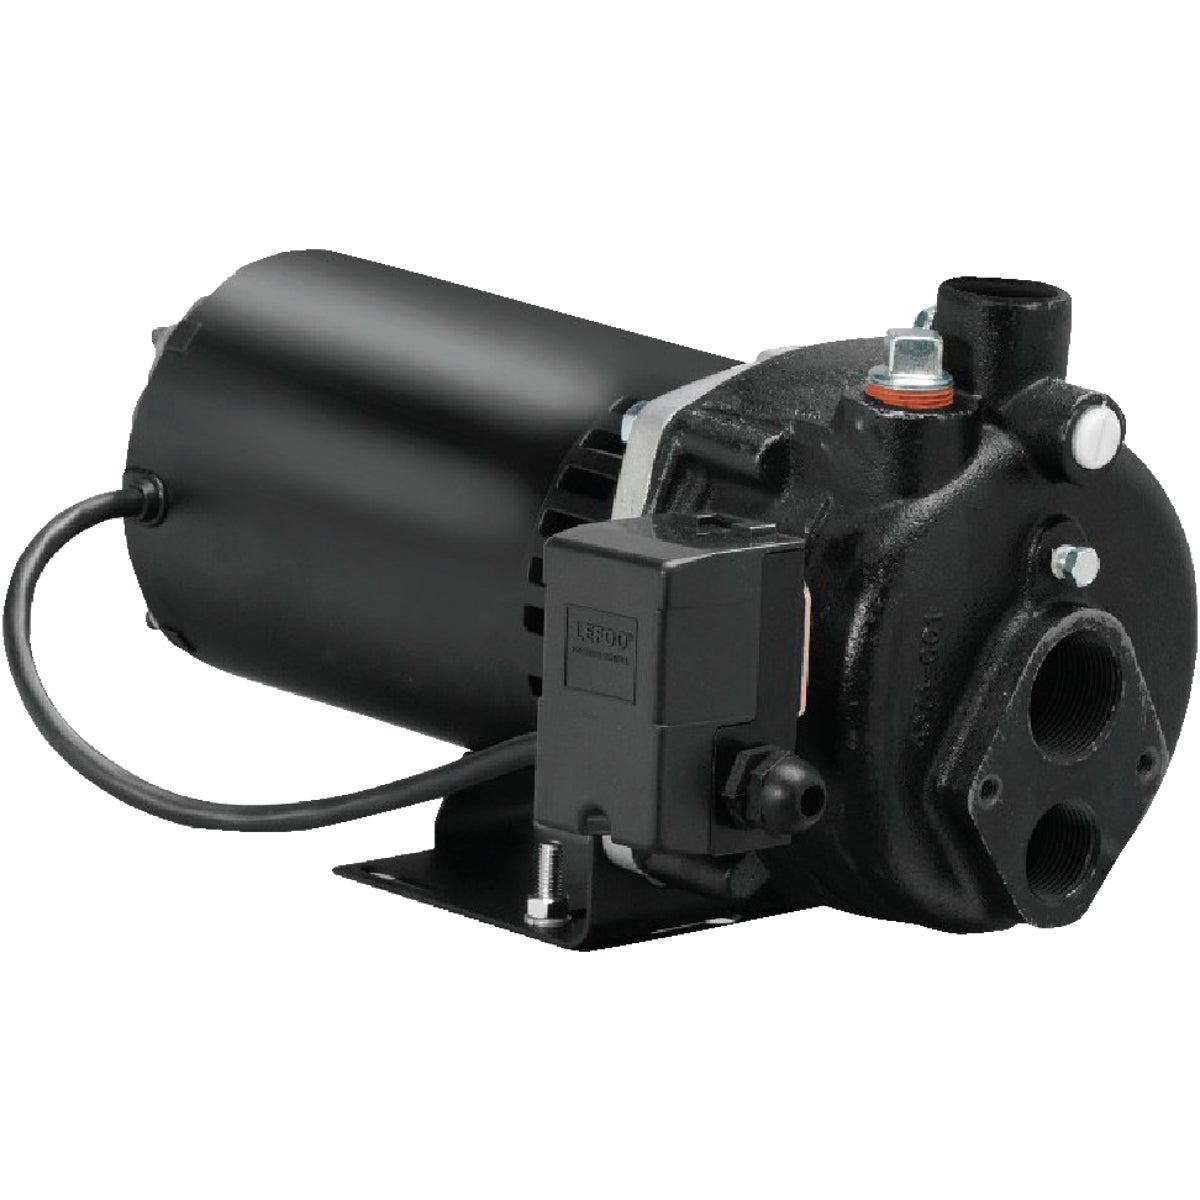 1/2HP CONV JET WELL PUMP - CWS50 by Wayne Water Systems